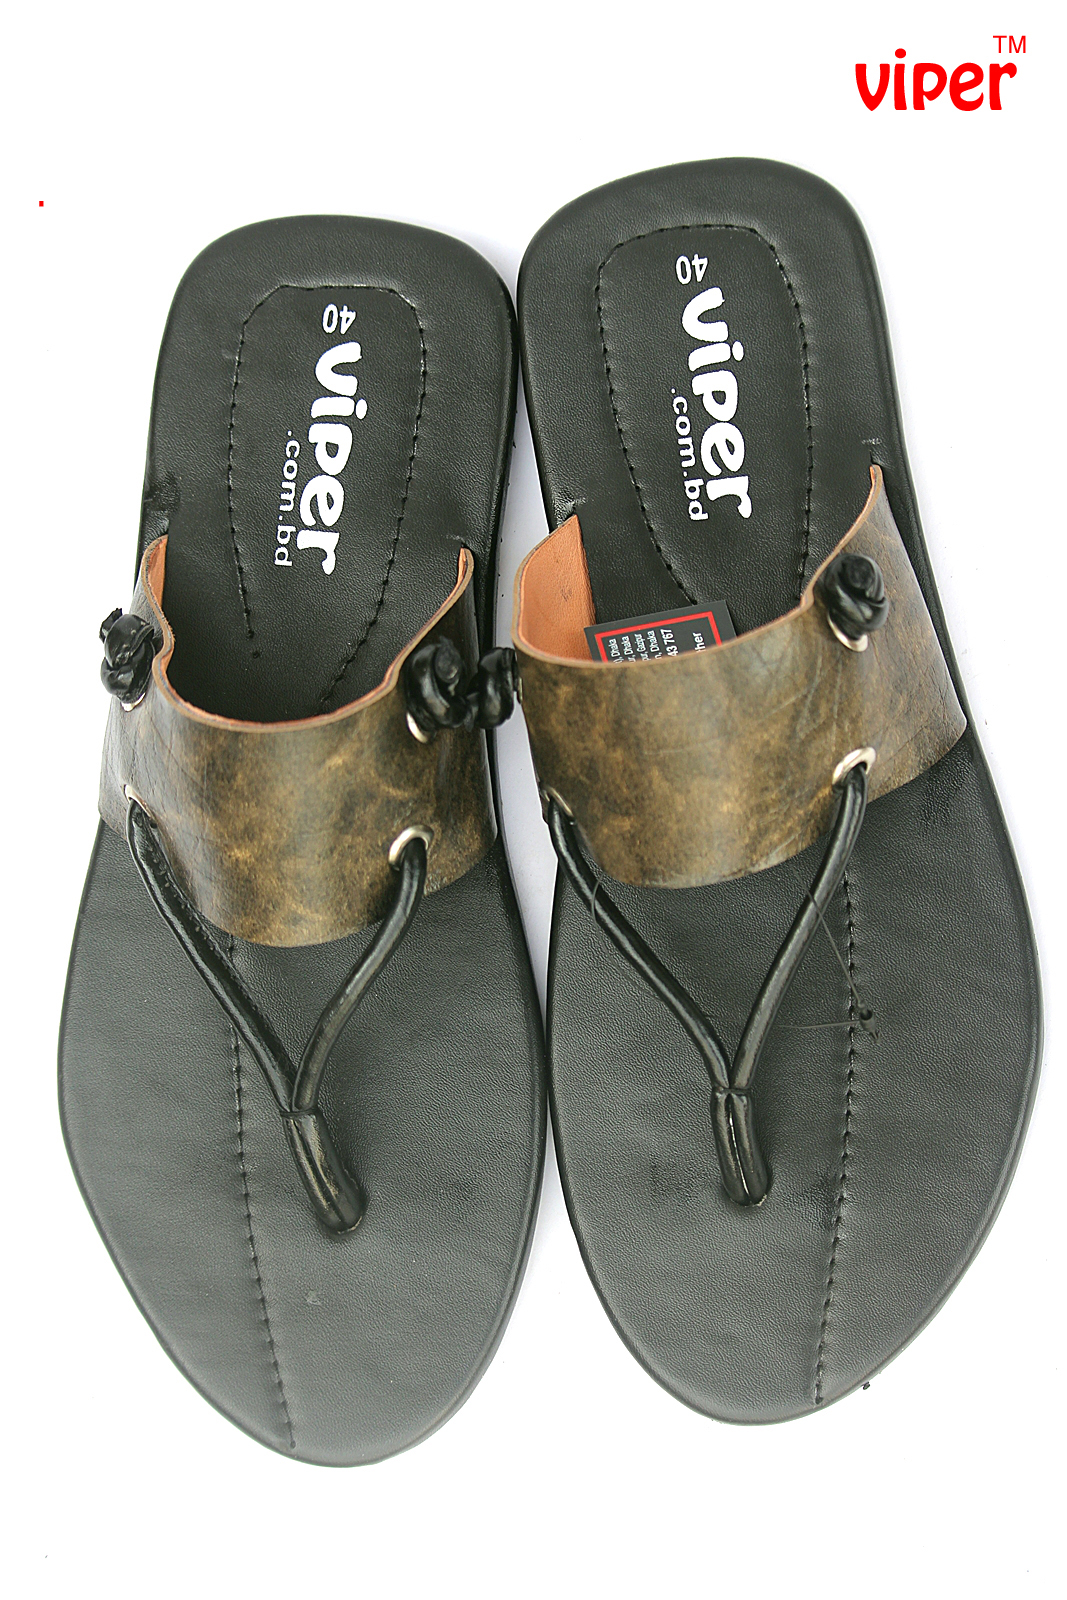 Smart Gents Sandal (Viper) - Product- GC 224